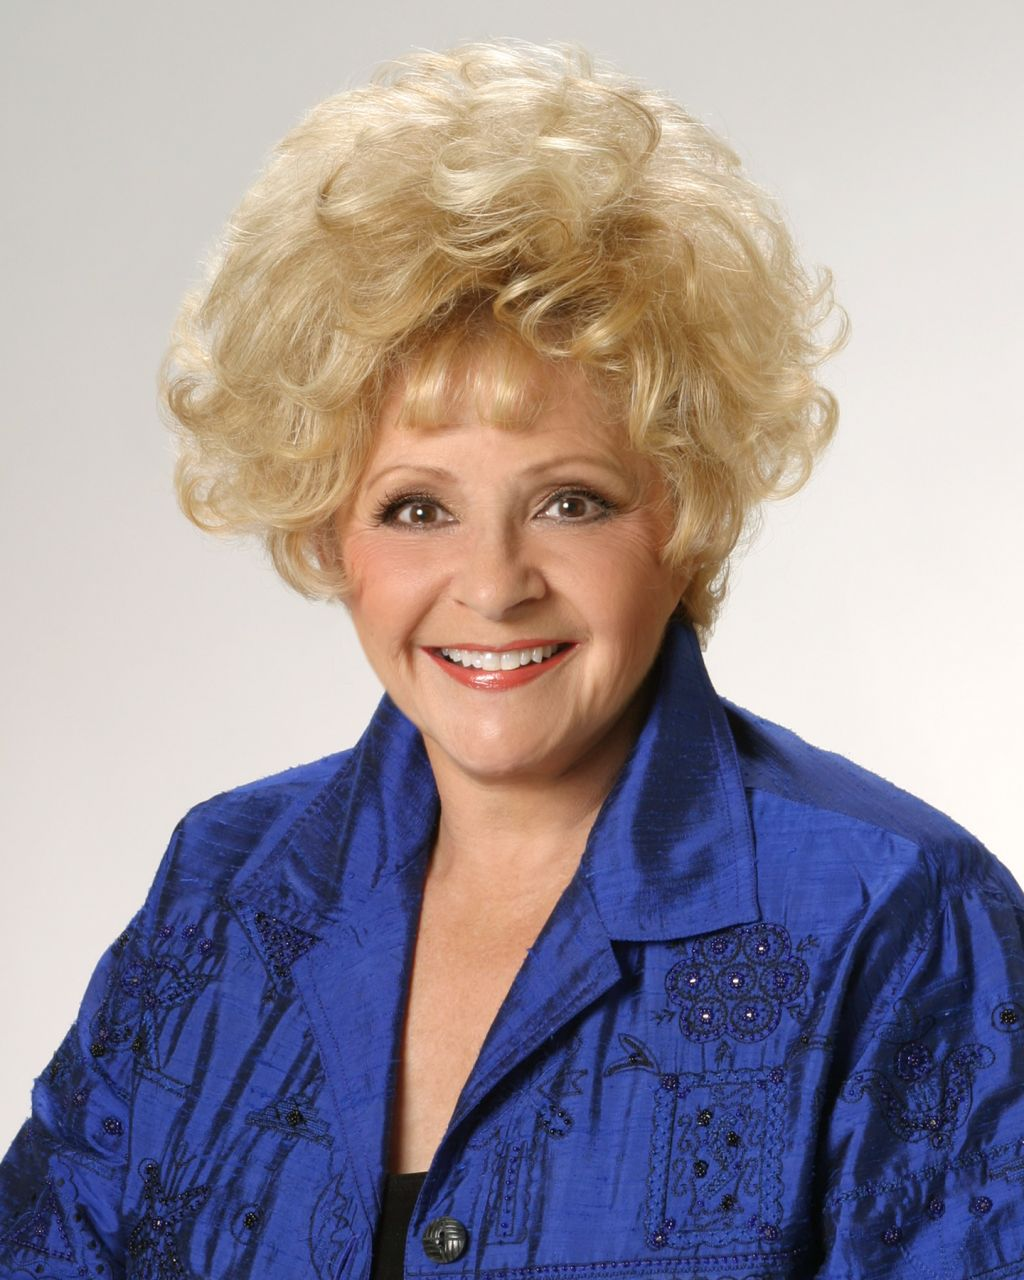 Interview with Brenda Lee: 'Little Miss Dynamite'